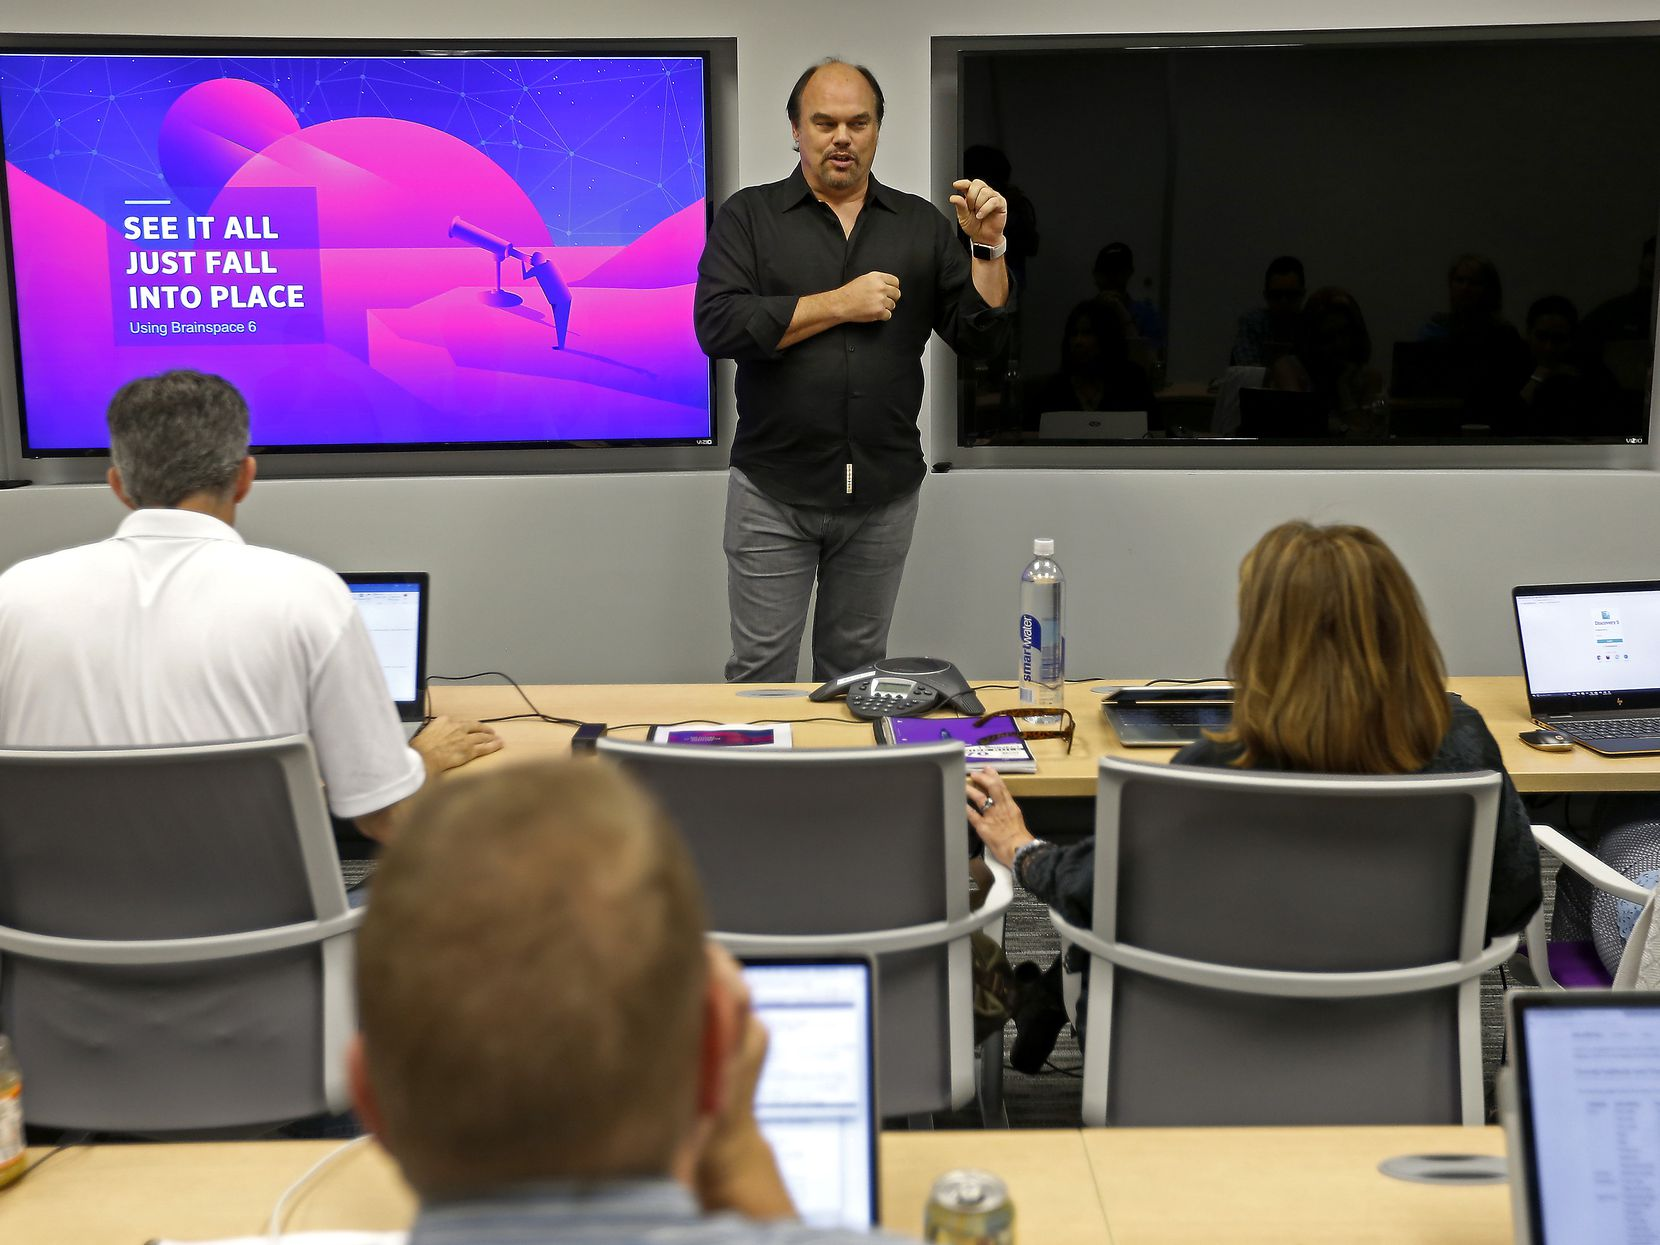 Dave Copps, CEO and founder of Brainspace, a Cyxtera business, speaks during a training class at the Addison, Texas, office on Tuesday, Oct. 10, 2017.